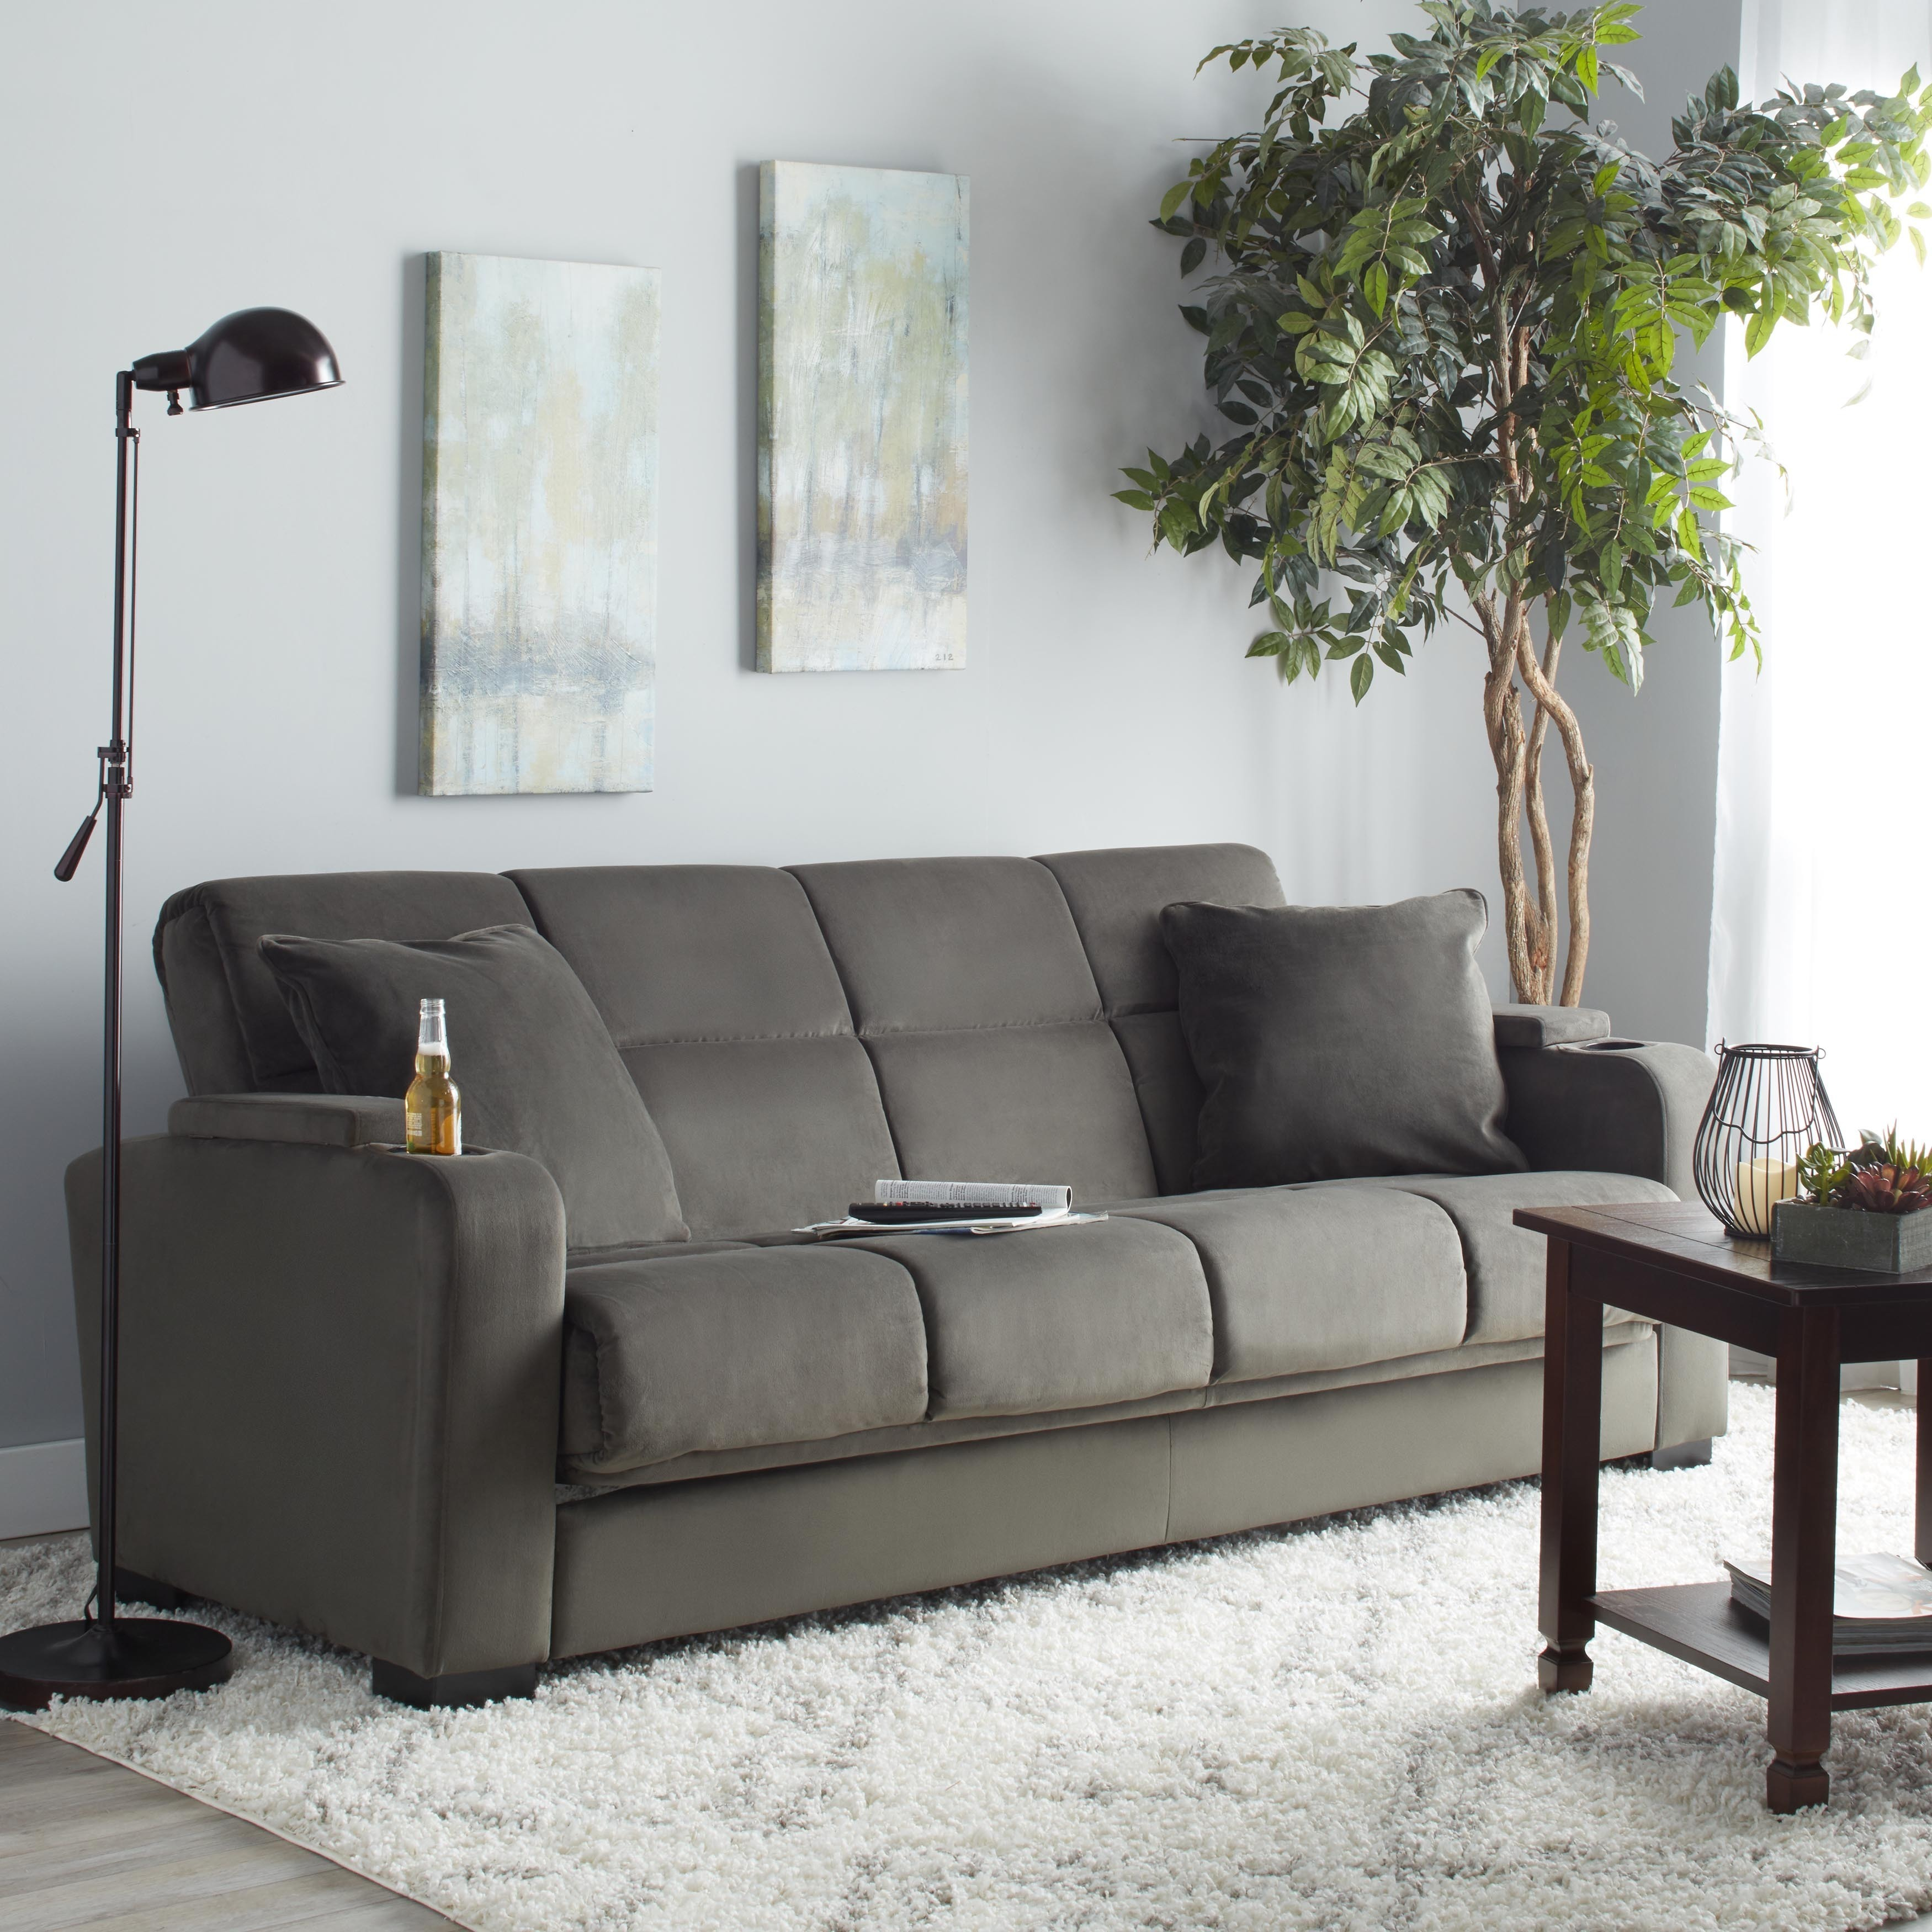 Convert A Sofa Details About Handy Living Sophia Storage